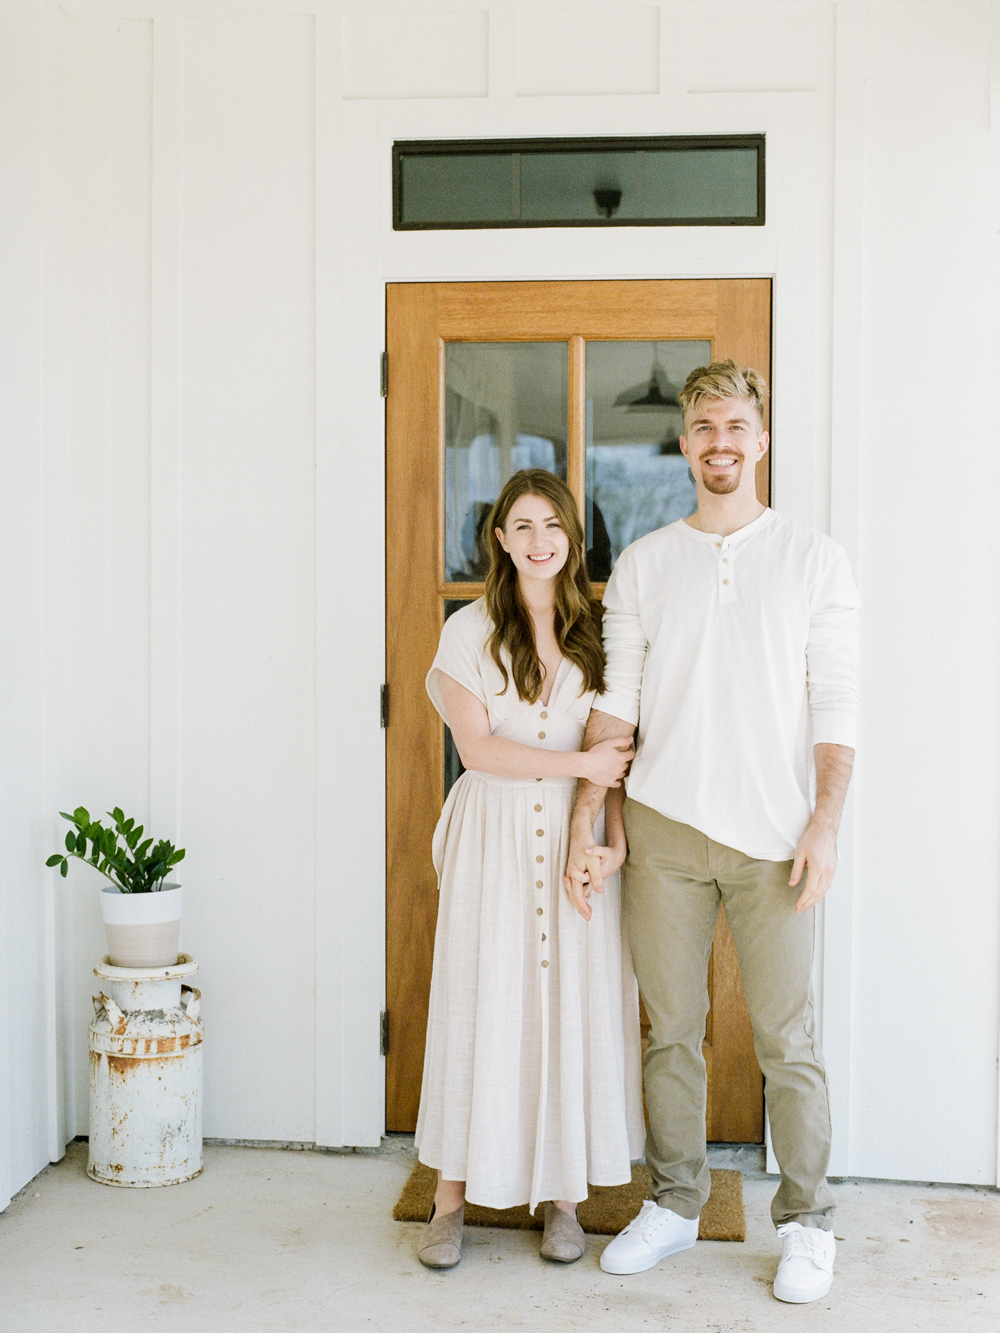 at home engagement session - Christine Gosch - featured on Magnolia Rouge - film photographer - elopement and intimate wedding photographer-22.jpg